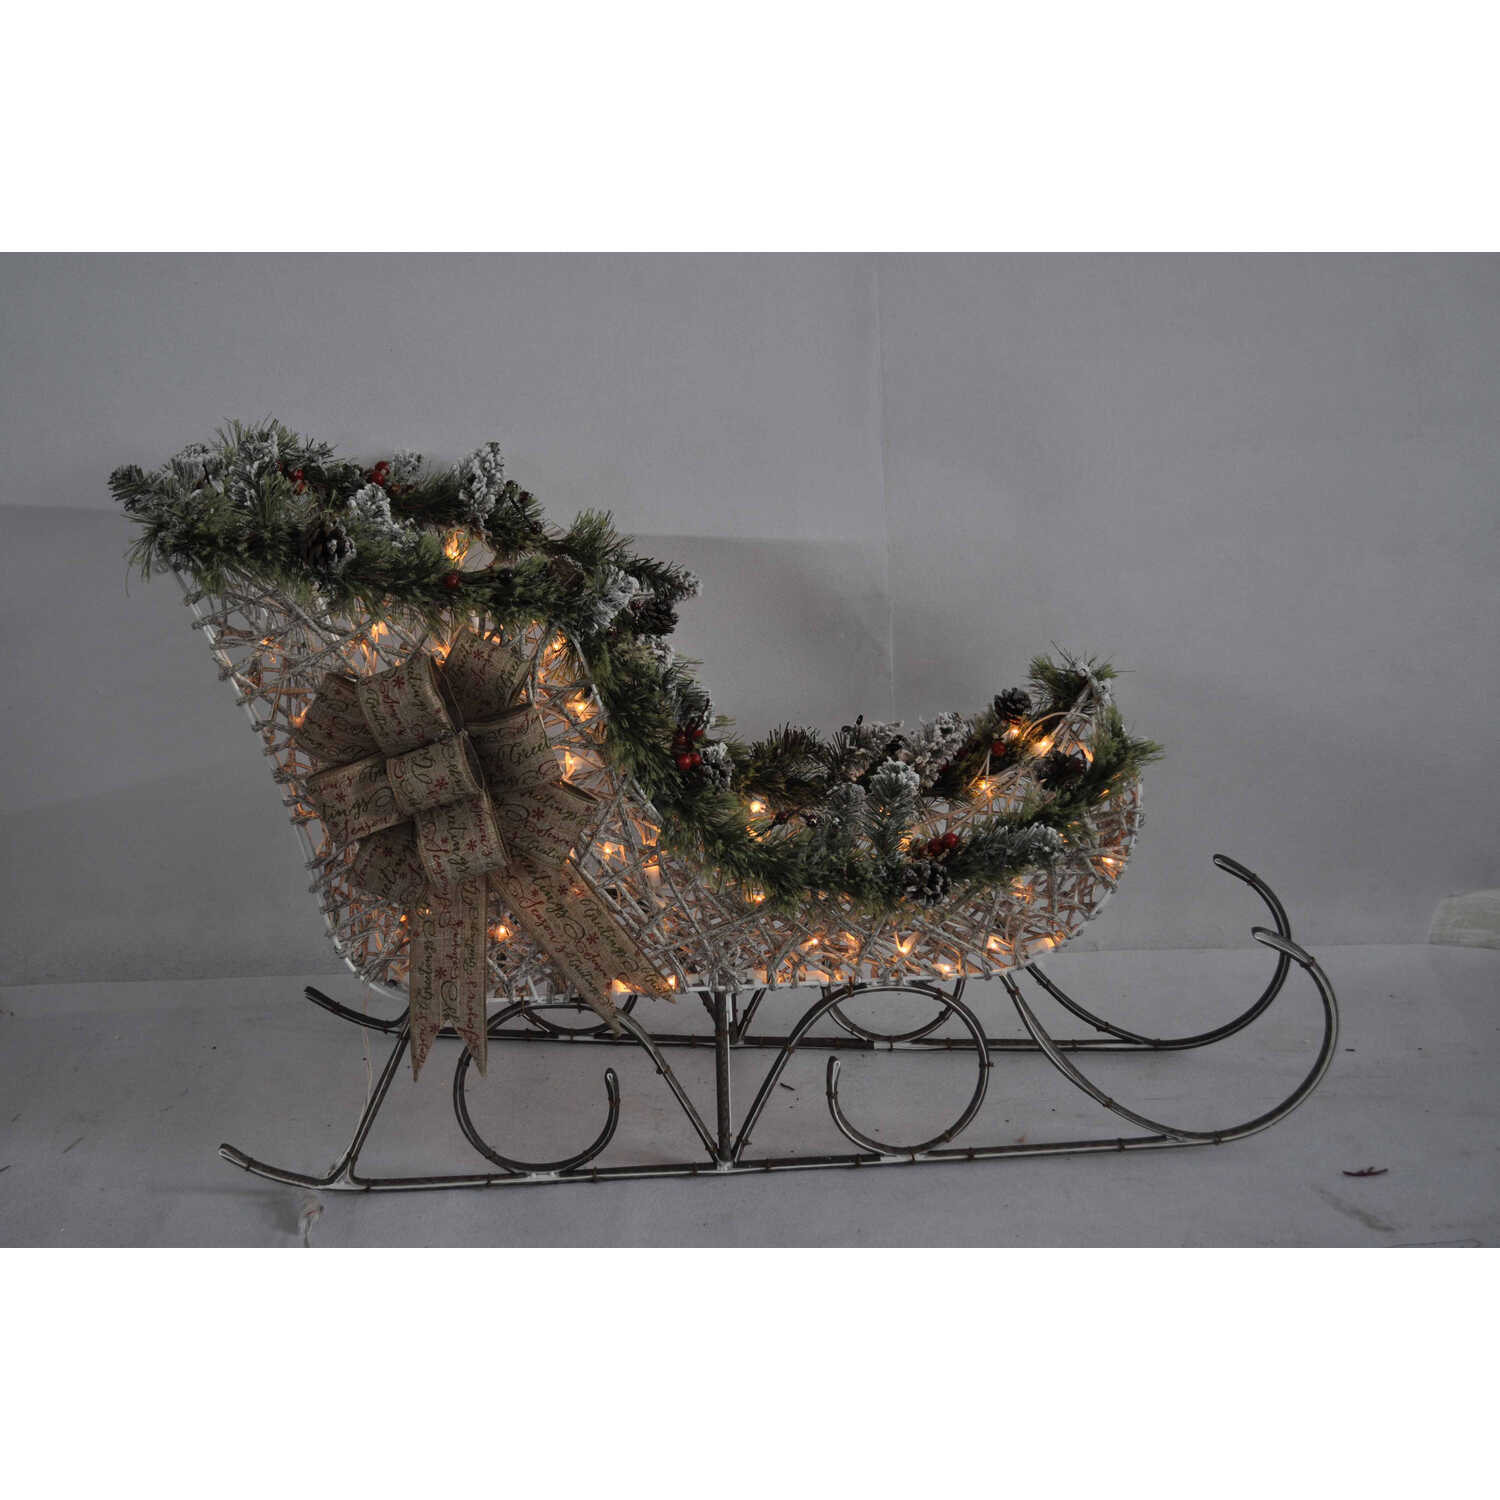 Celebrations  Sleigh  LED Yard Art  White  1 each Birch